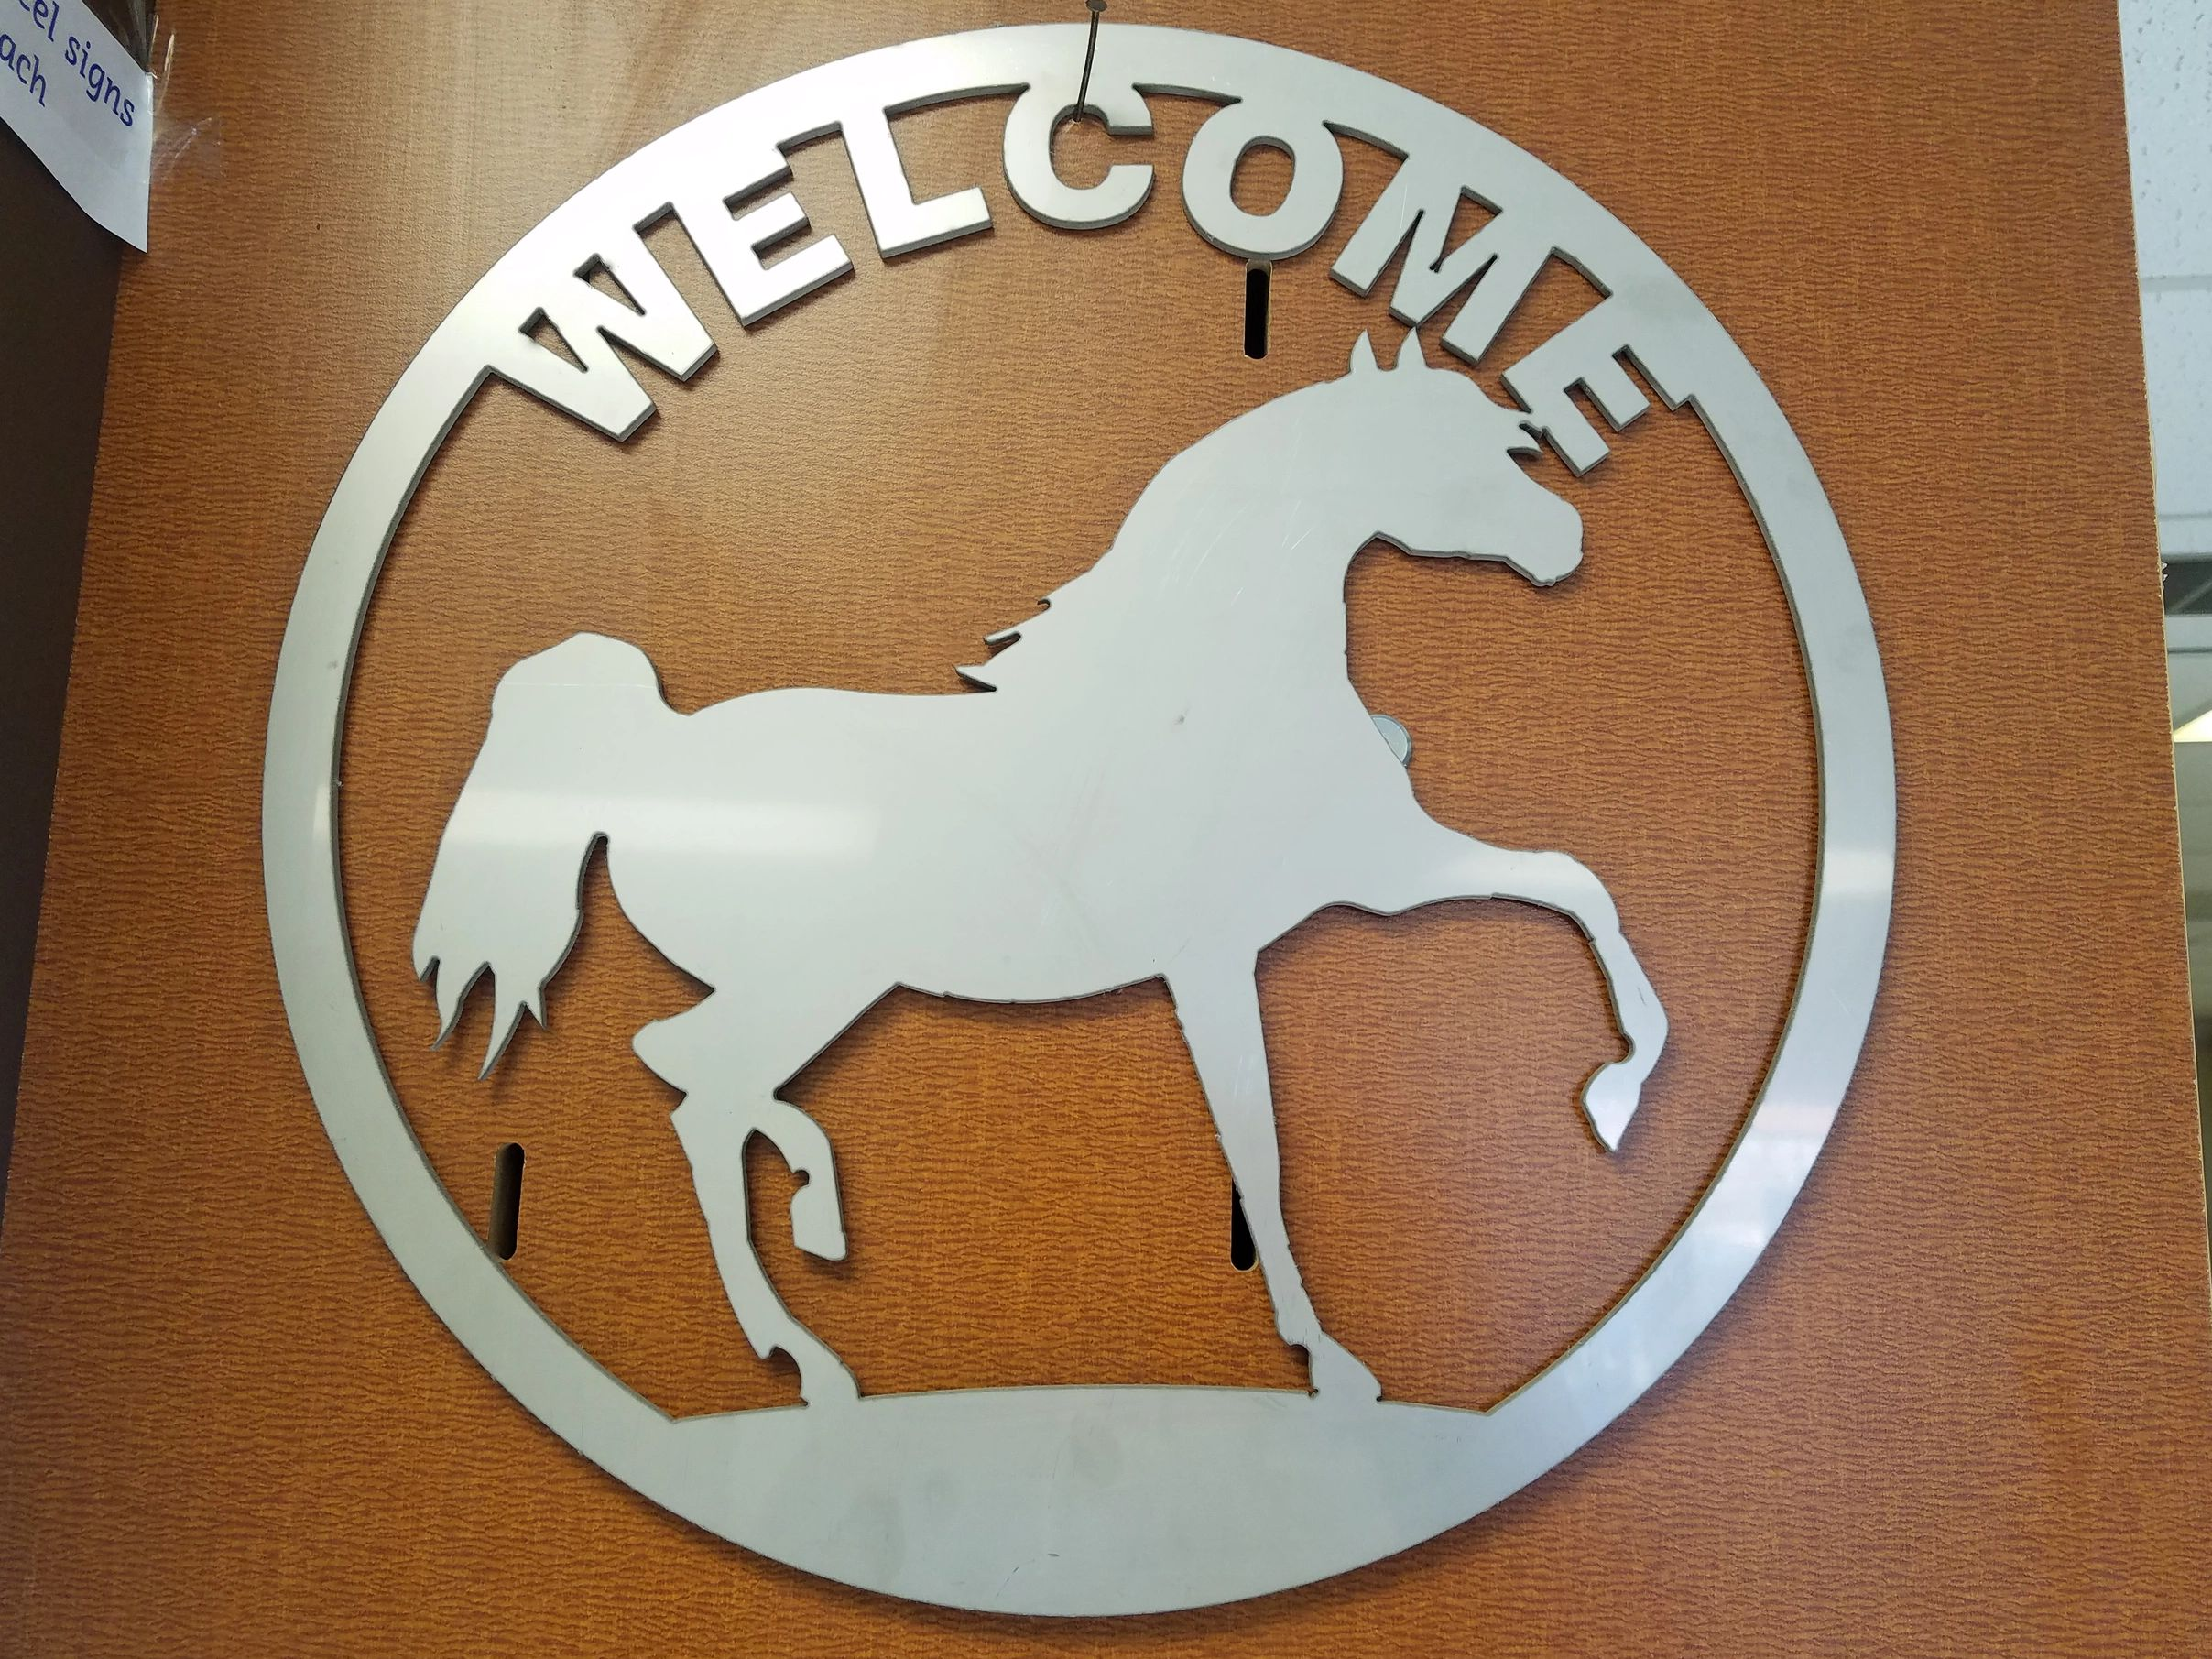 Stainless steel welcome sign for sale